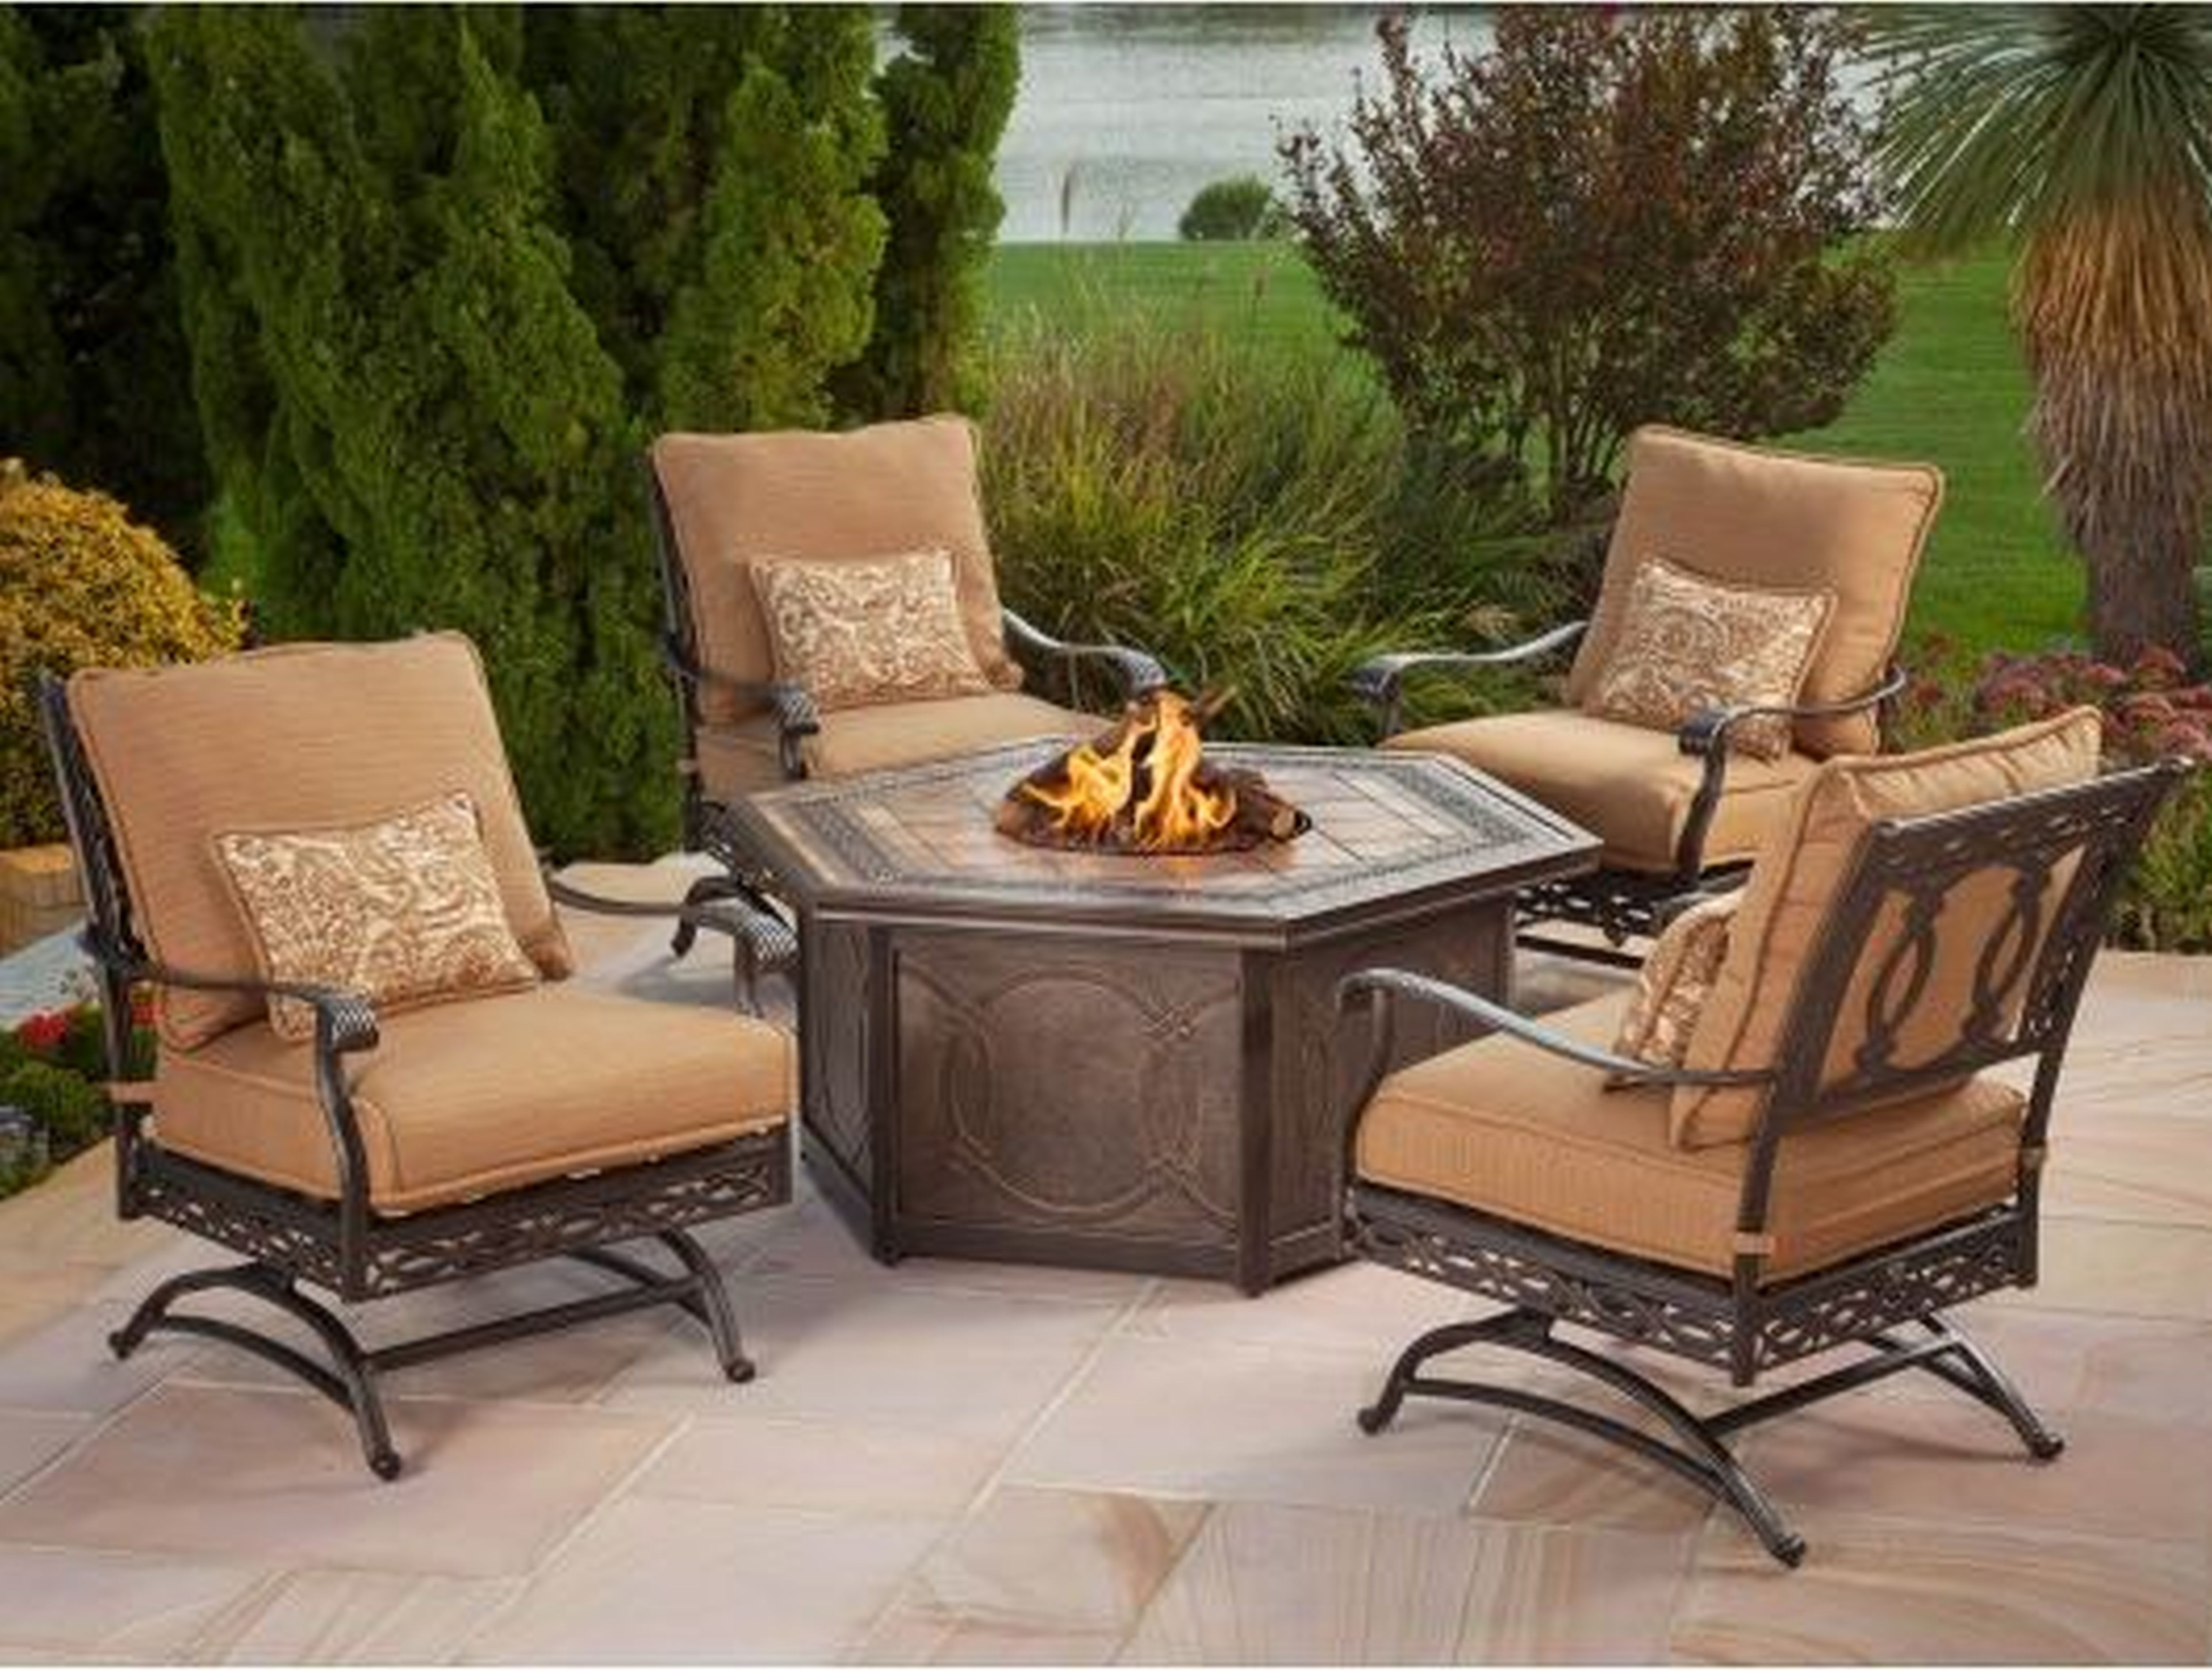 clearance patio furniture sets ... patio, patio set clearance home depot patio furniture clearance patio VLOMMJP